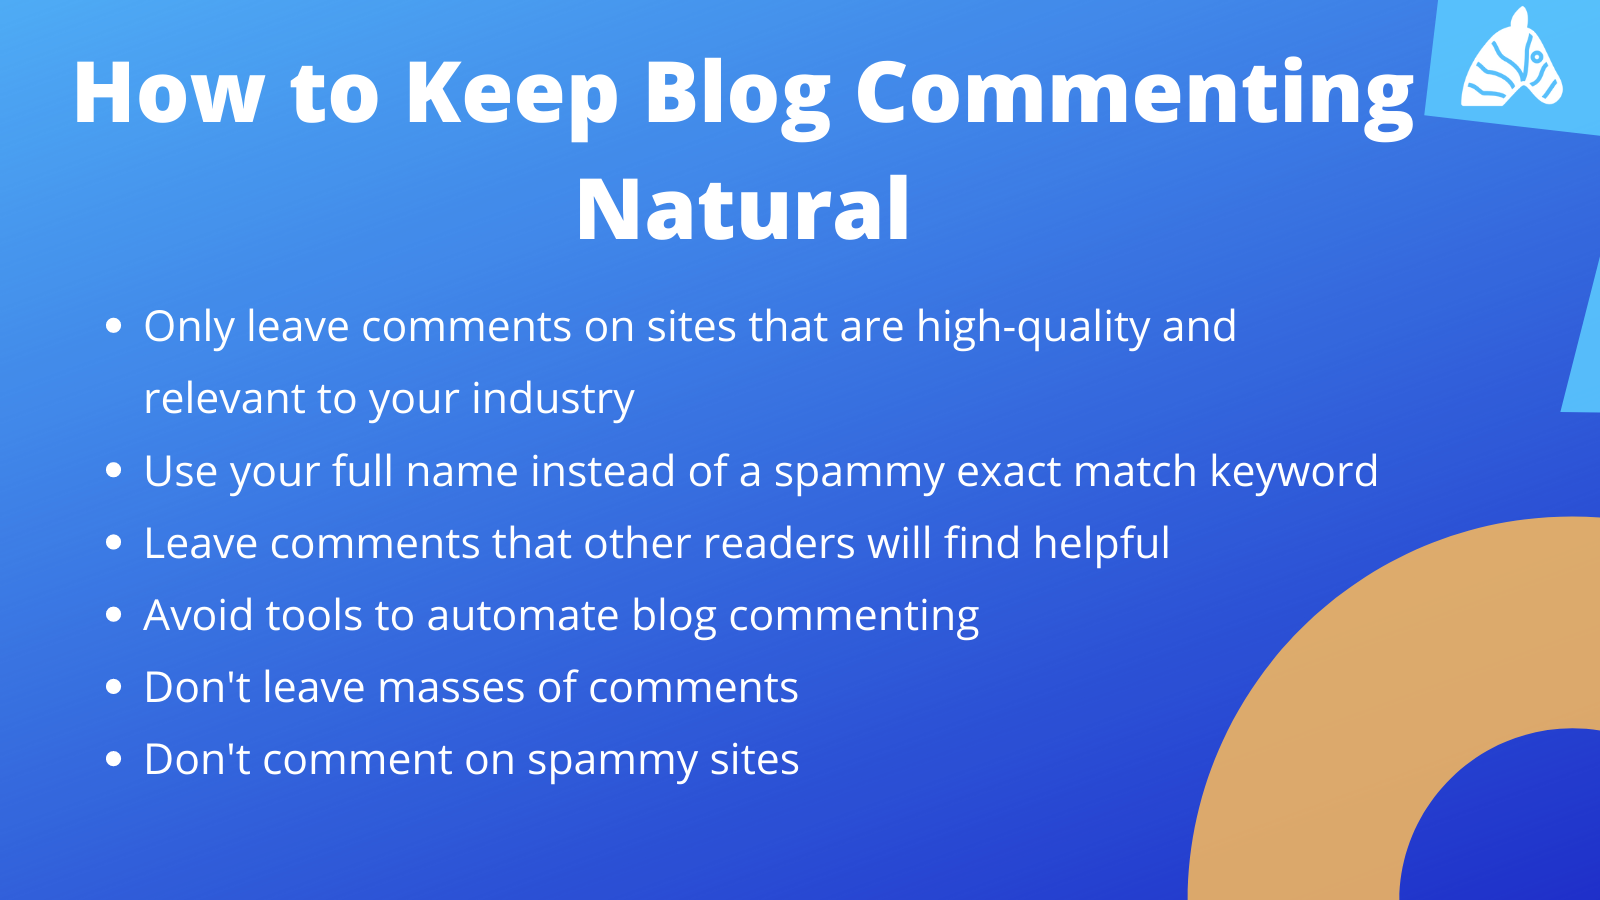 Information on how to keep link types natural